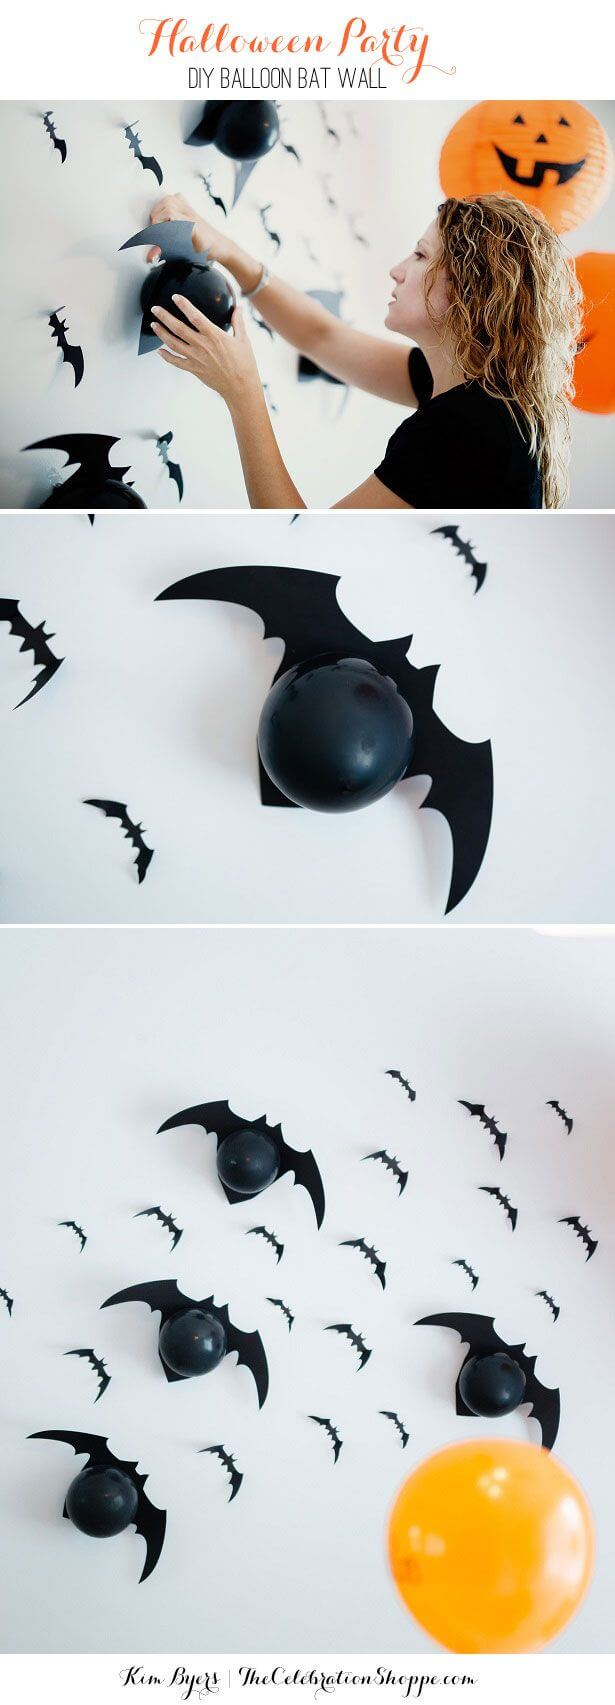 Batty Balloons | Awesome DIY Halloween Party Decor | BHG Halloween